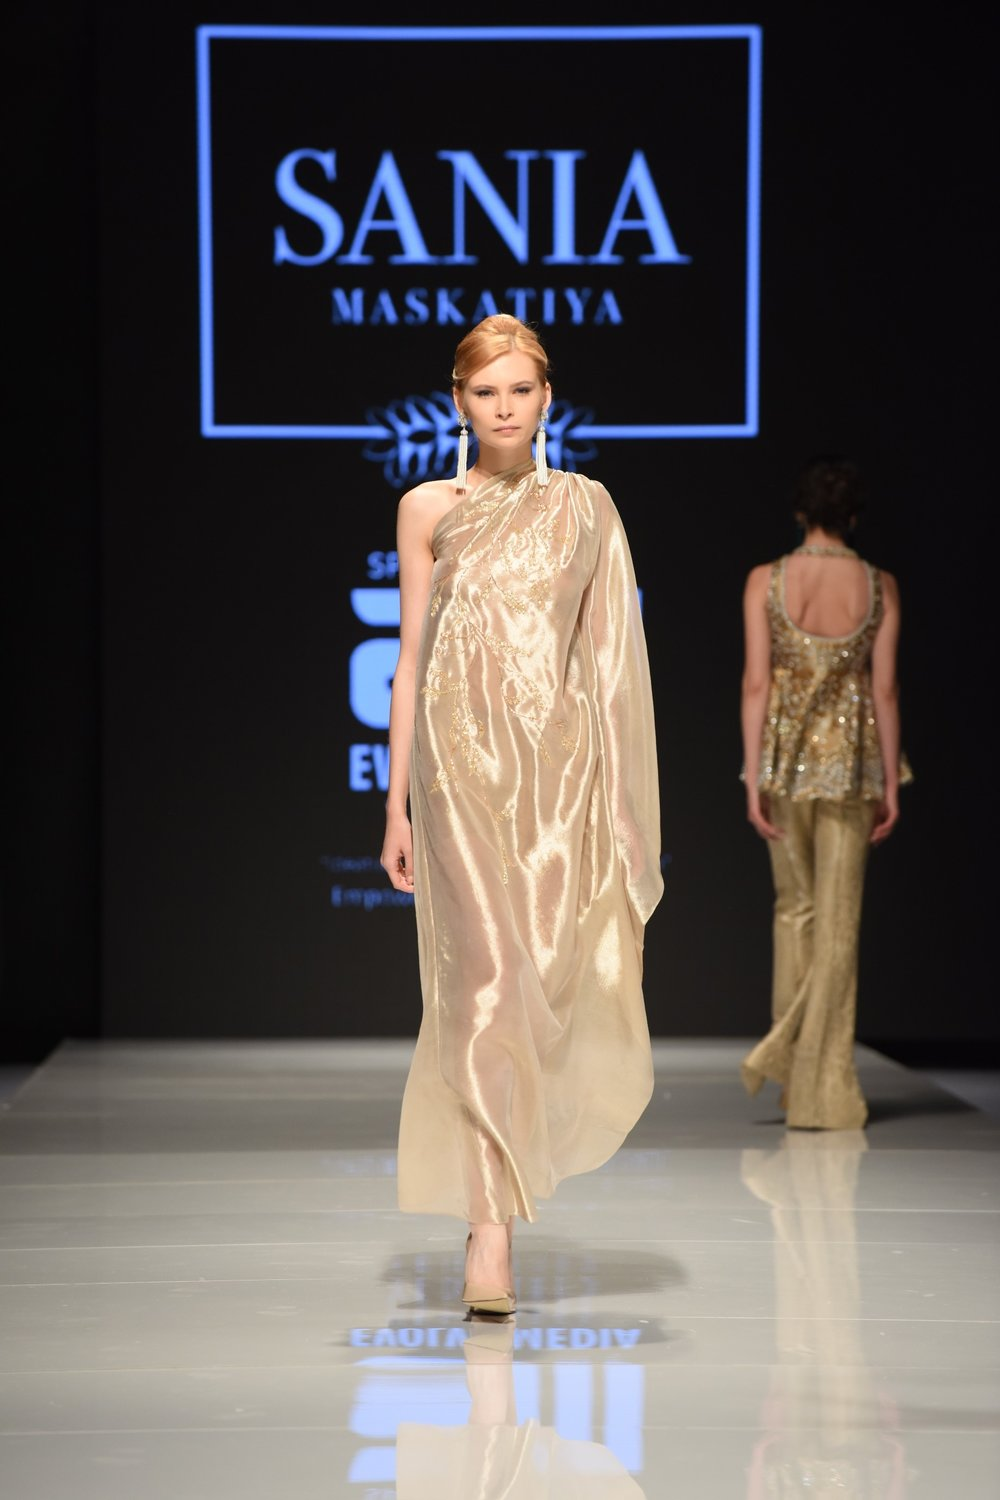 Sania-Maskatiya-Beirut-Fashion-Week-2017-F-21.jpg